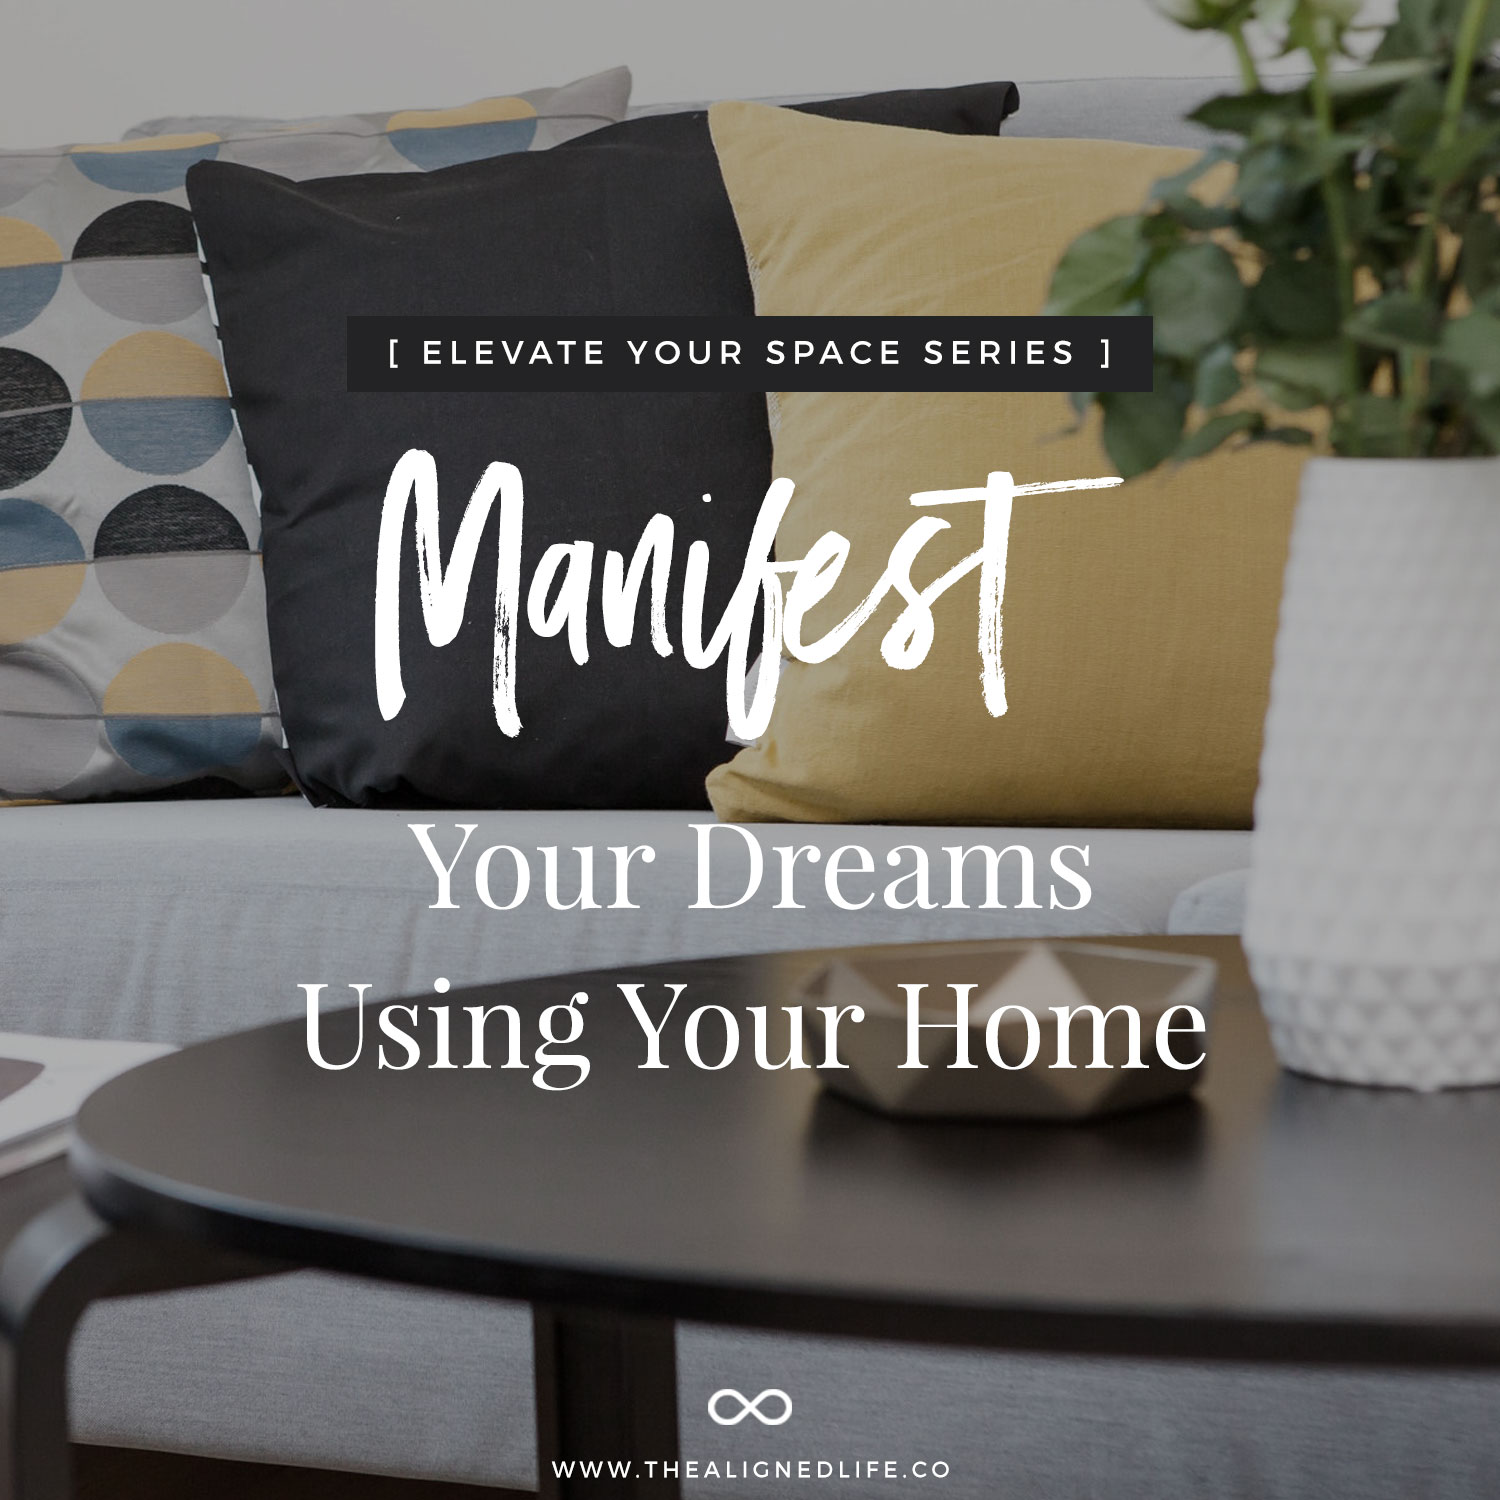 Manifest Your Dreams Using Your Home: The 3-Step Process